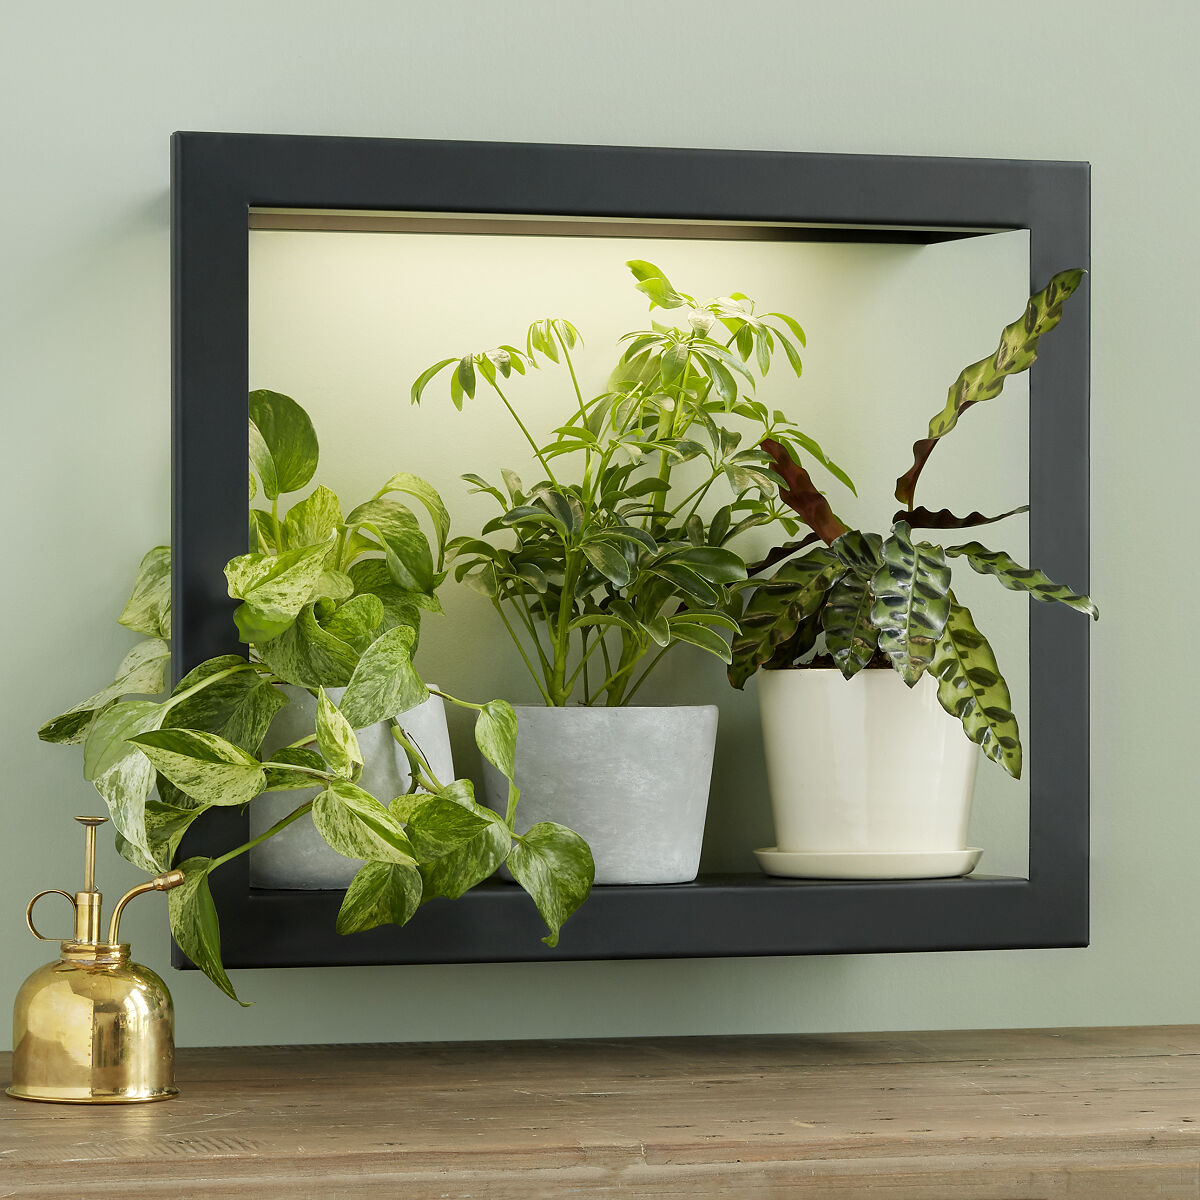 growlight frame shelf plant display uncommongoods